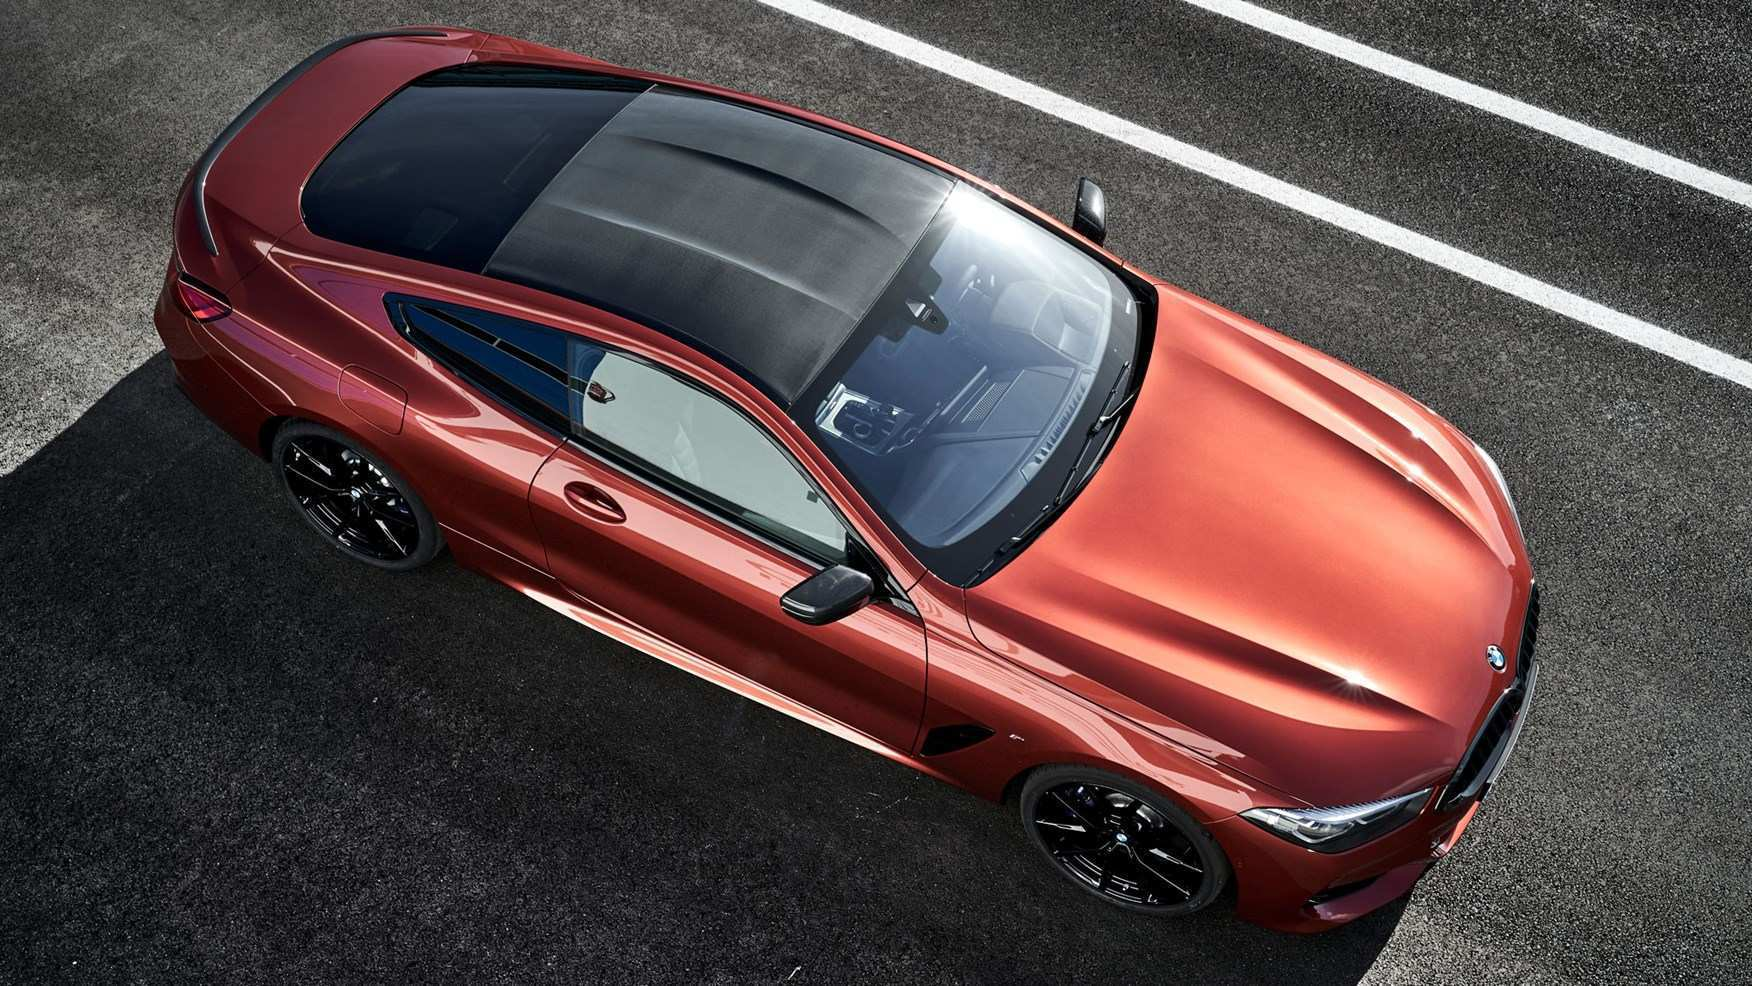 67 The Best 2019 Bmw 8 Series Review Picture